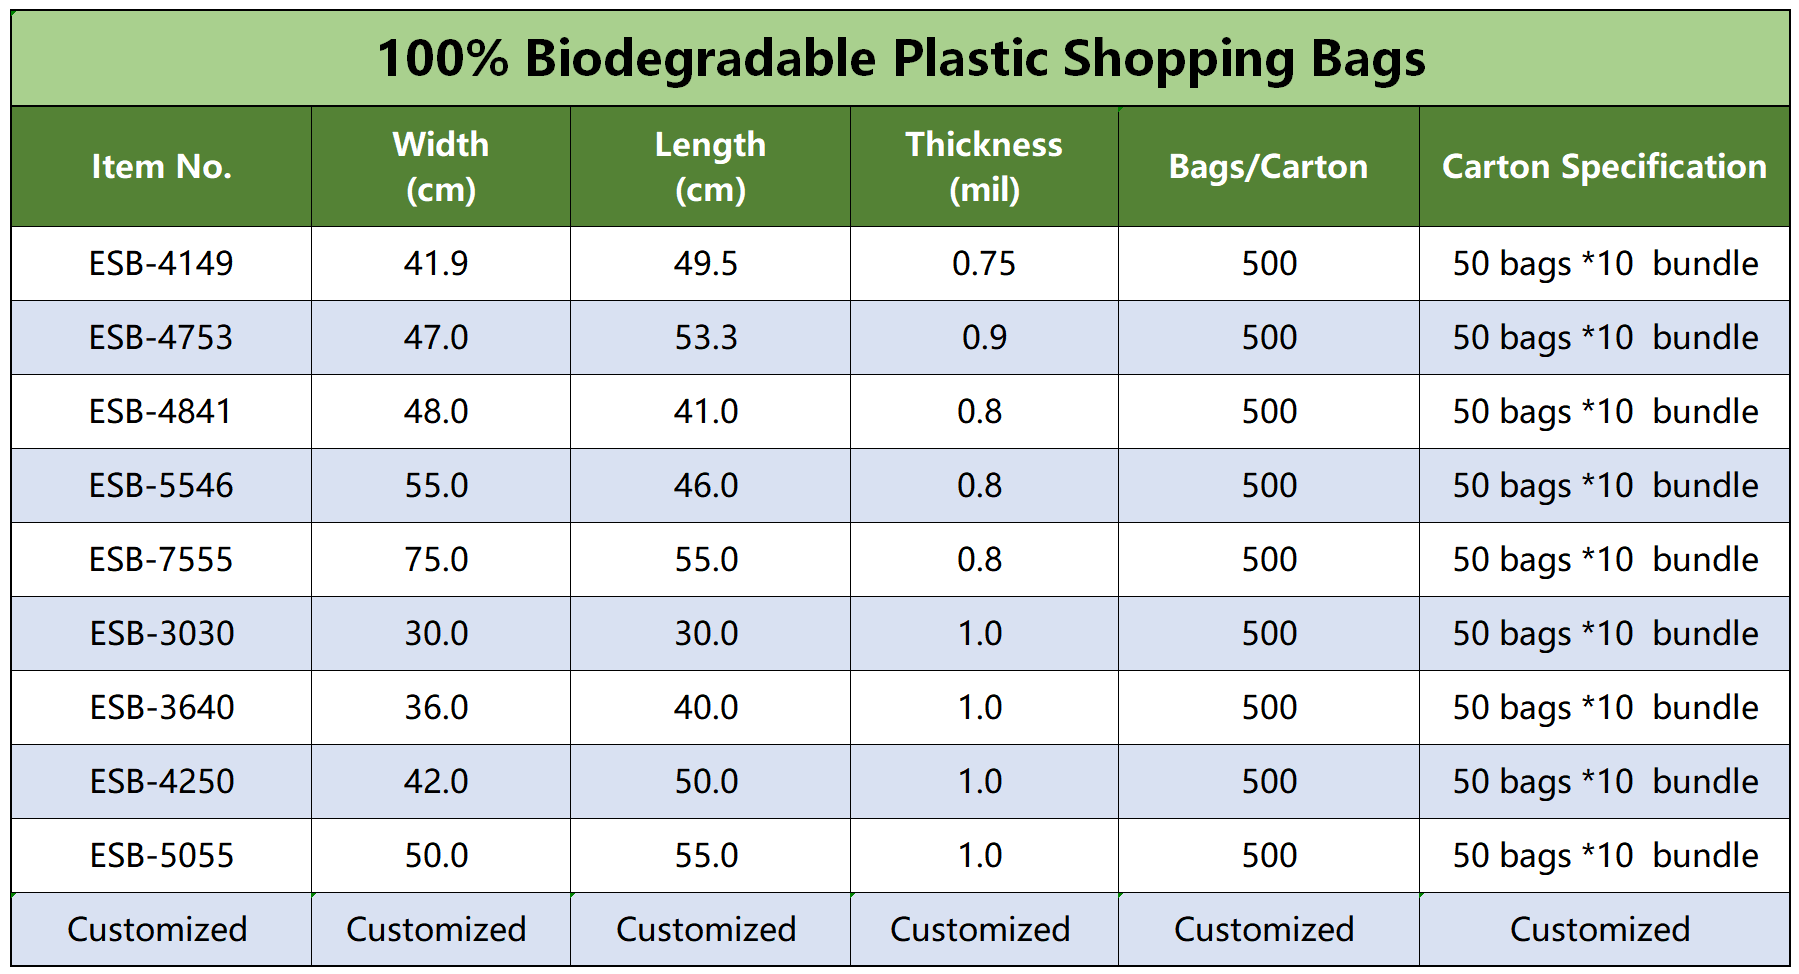 100% Biodegradable Plastic Shopping Bags